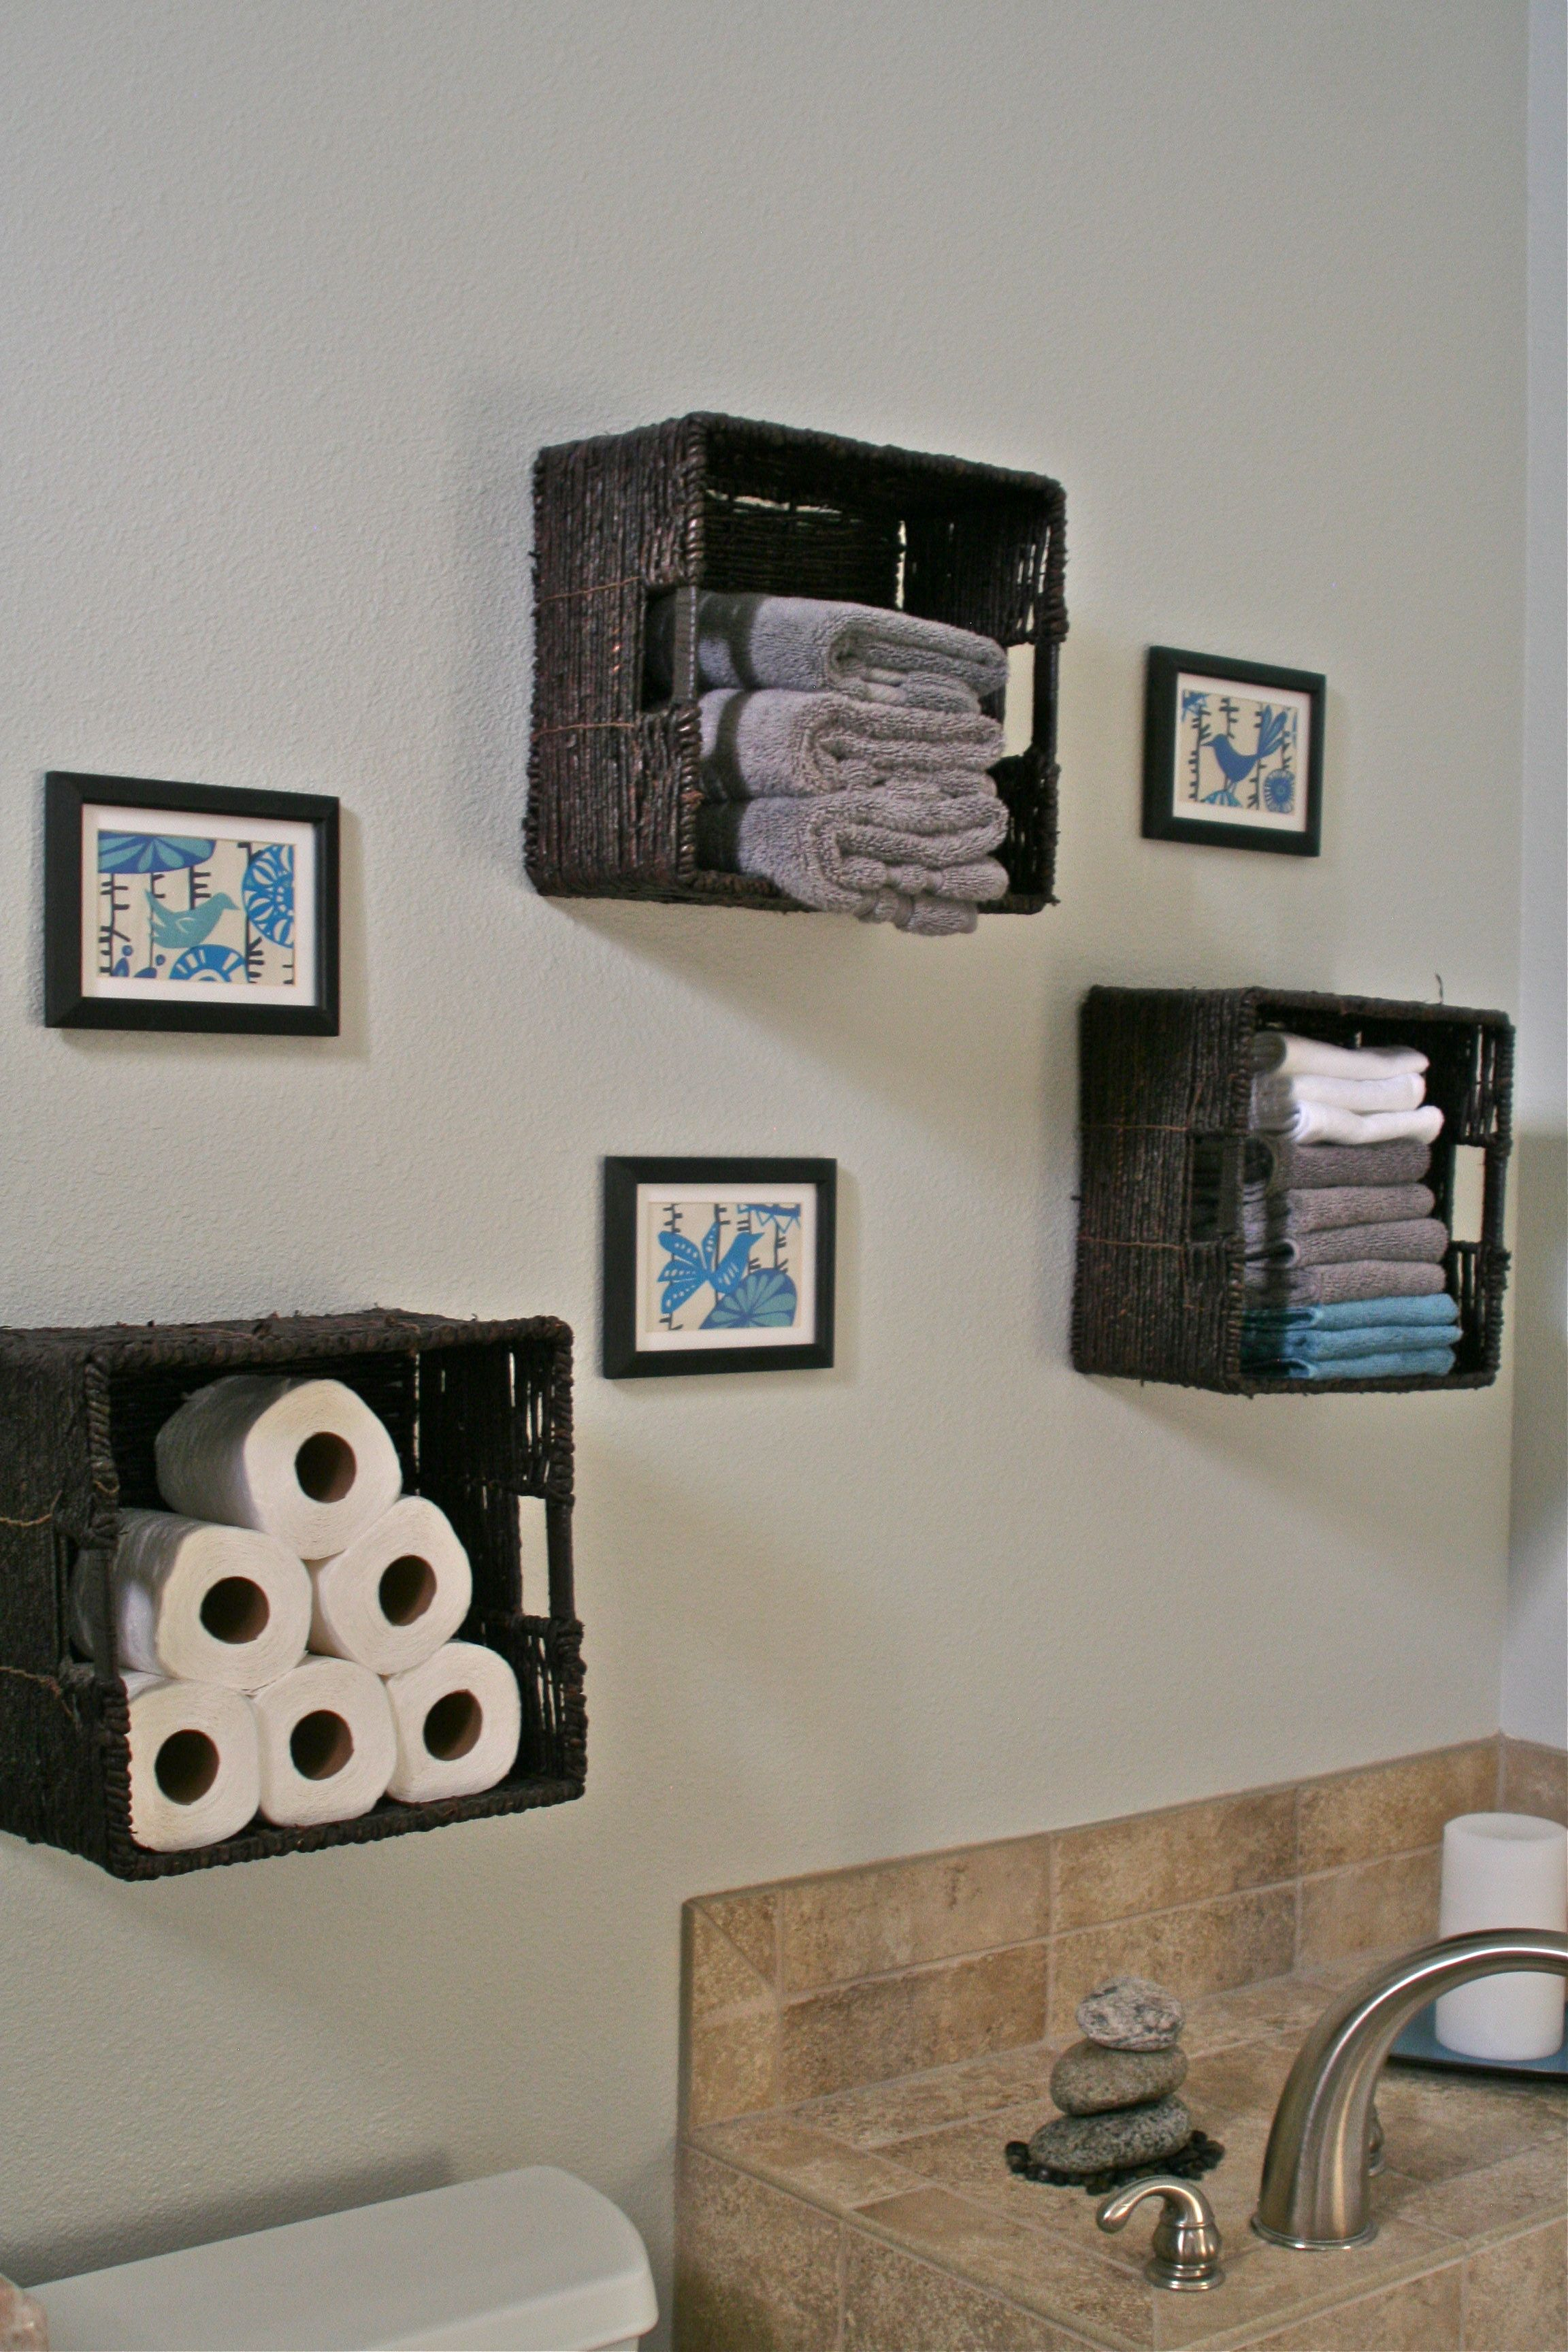 Bathroom Storage Baskets For Towels Toilet Paper Etc Love with regard to size 2304 X 3456